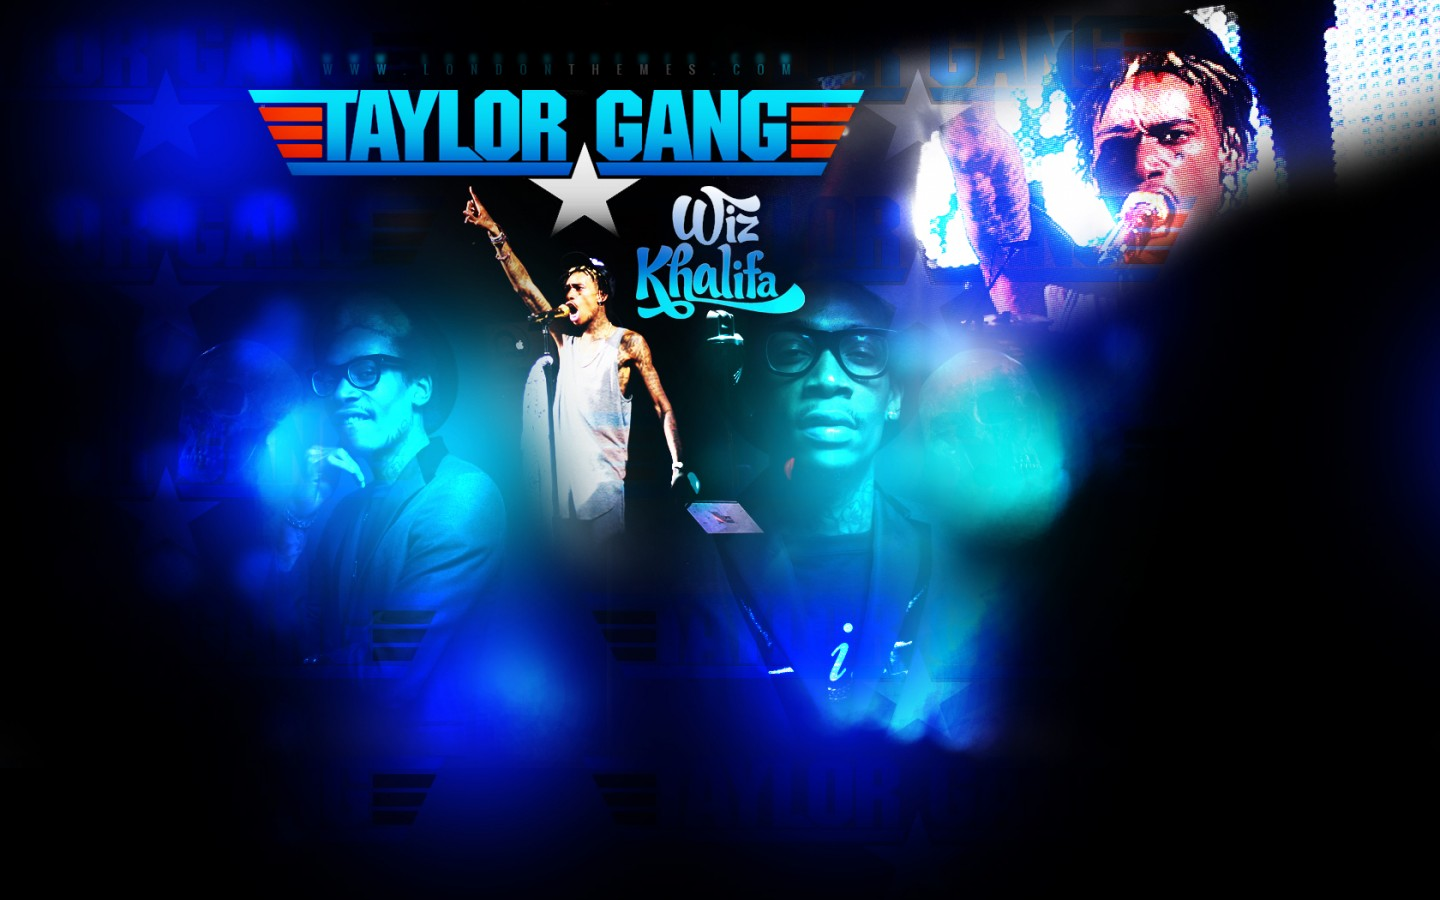 Wiz Khalifa Taylor Gang Concert Rap Wallpapers 1440x900